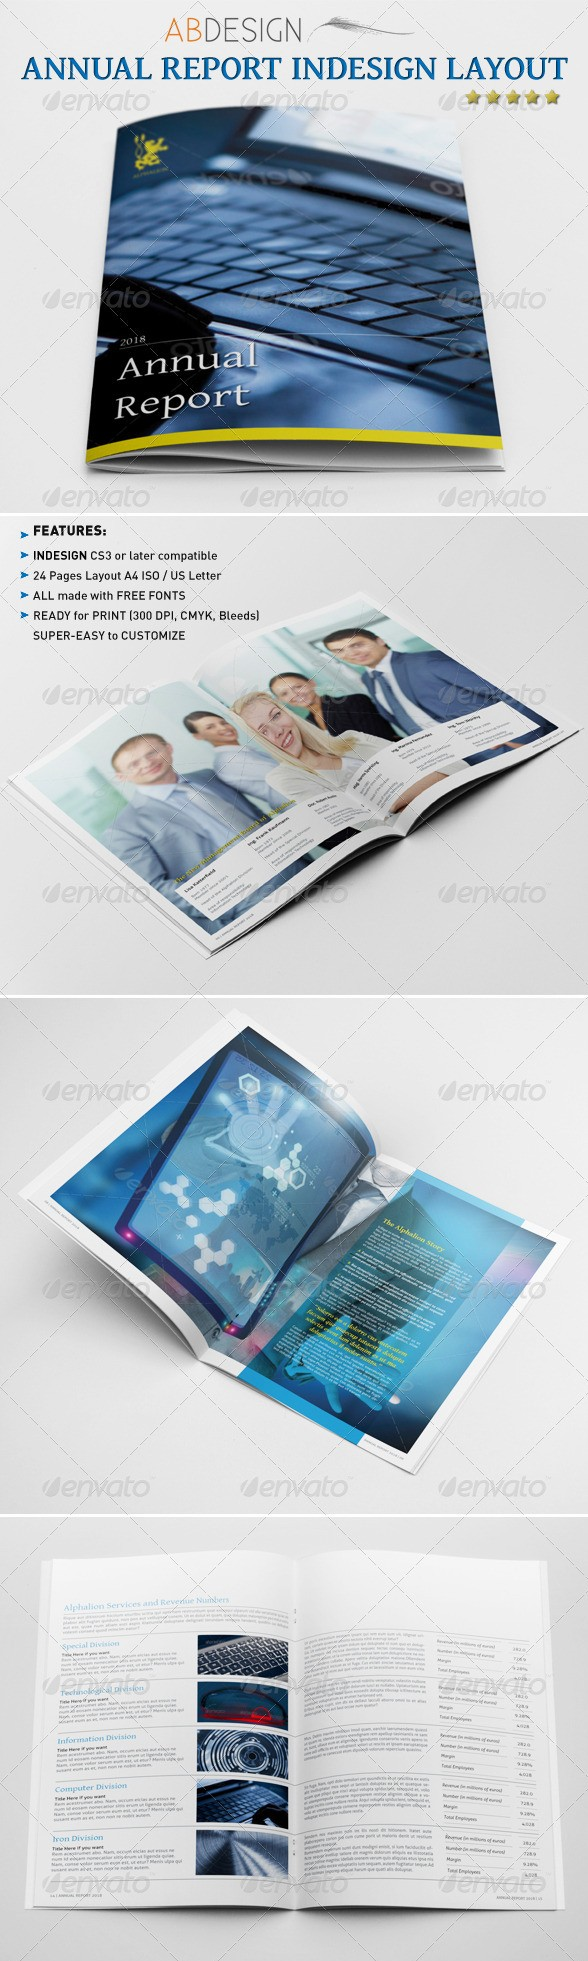 Annual Report Indesign Layout